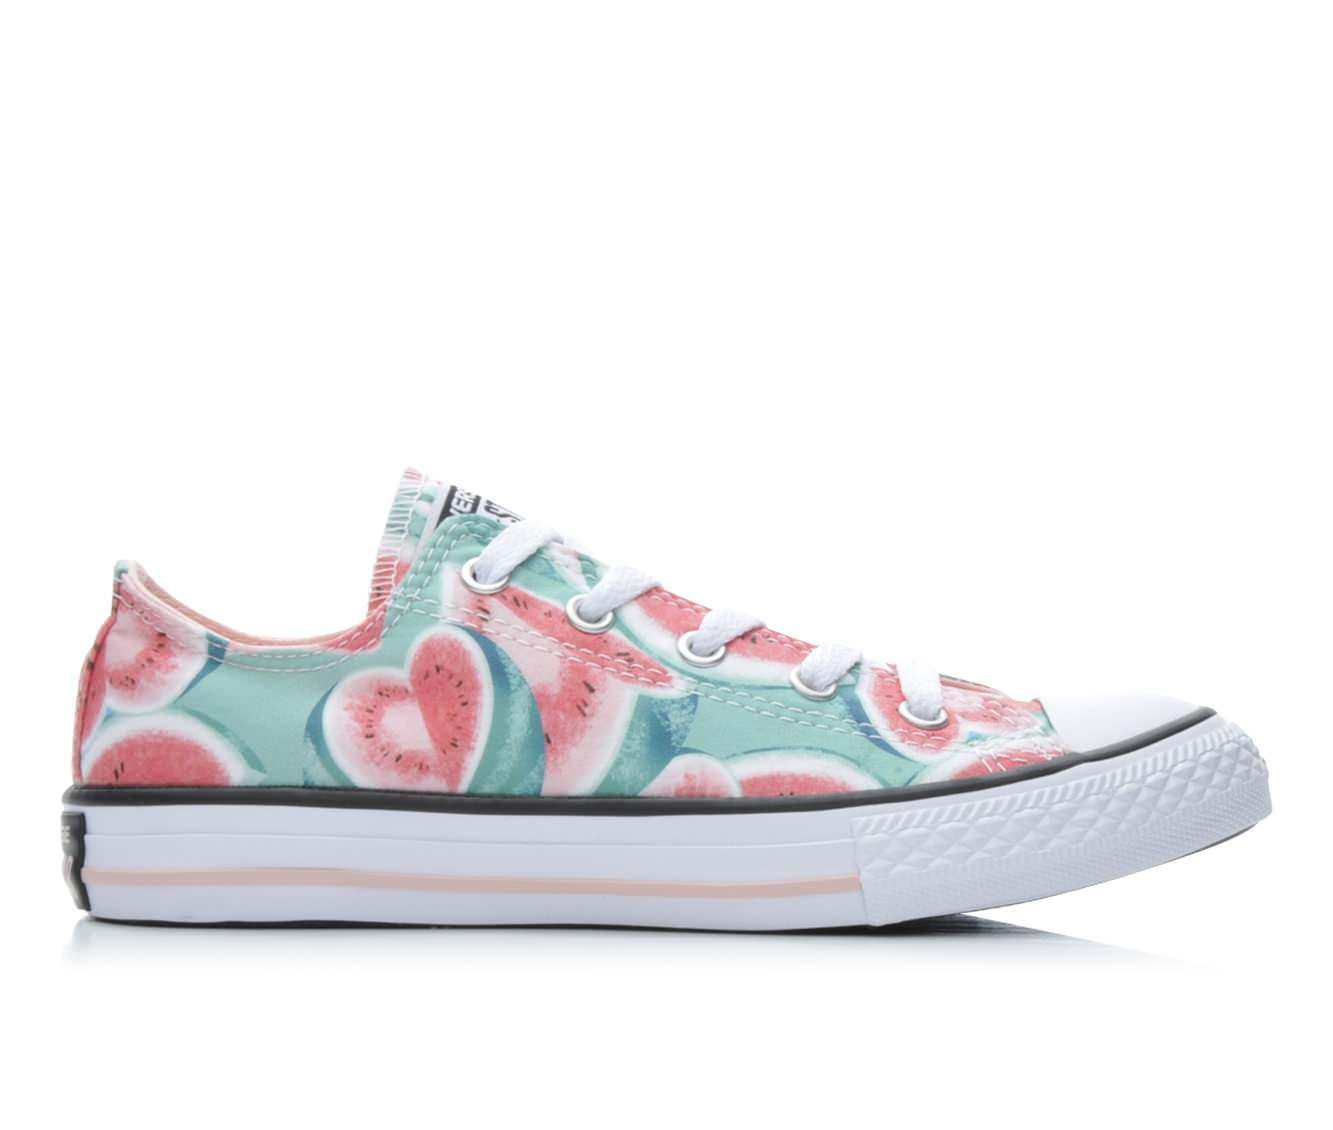 Girls' Converse Chuck Taylor Ox Basketball Shoes (Pink)